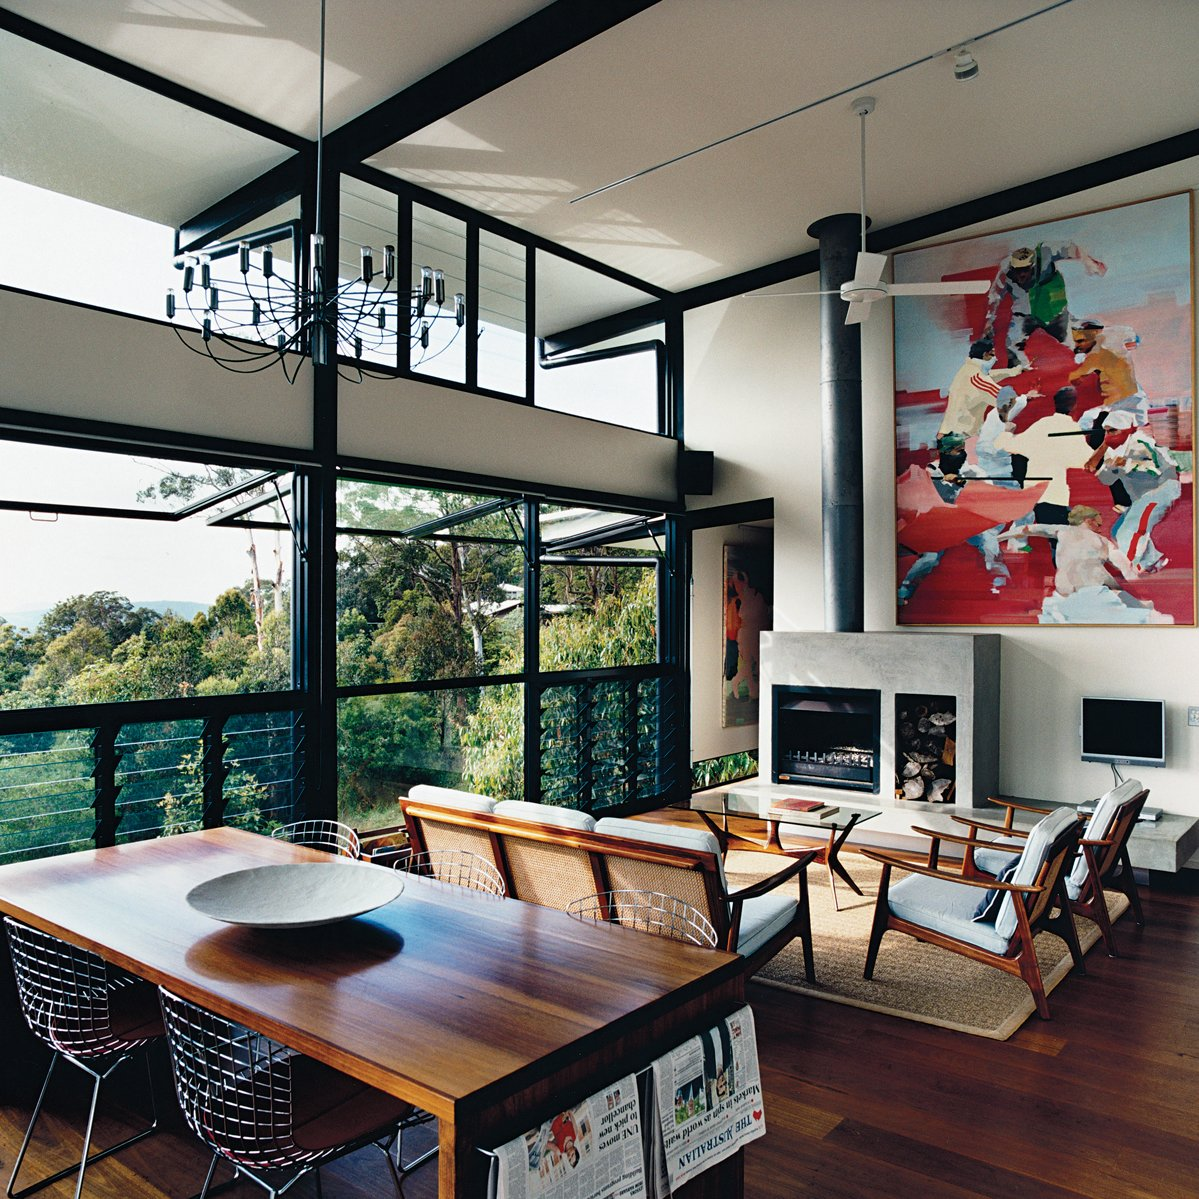 The open-plan living room was inspired by the couple's previous residence, a London loft. The paintings are by Dunlop. The louvered floor-to-ceiling windows, ceiling fan, and sliding deck doors usher in sea breezes and encourage good air circulation. Photo by Richard Powers.  Daring Hillside Homes by Diana Budds